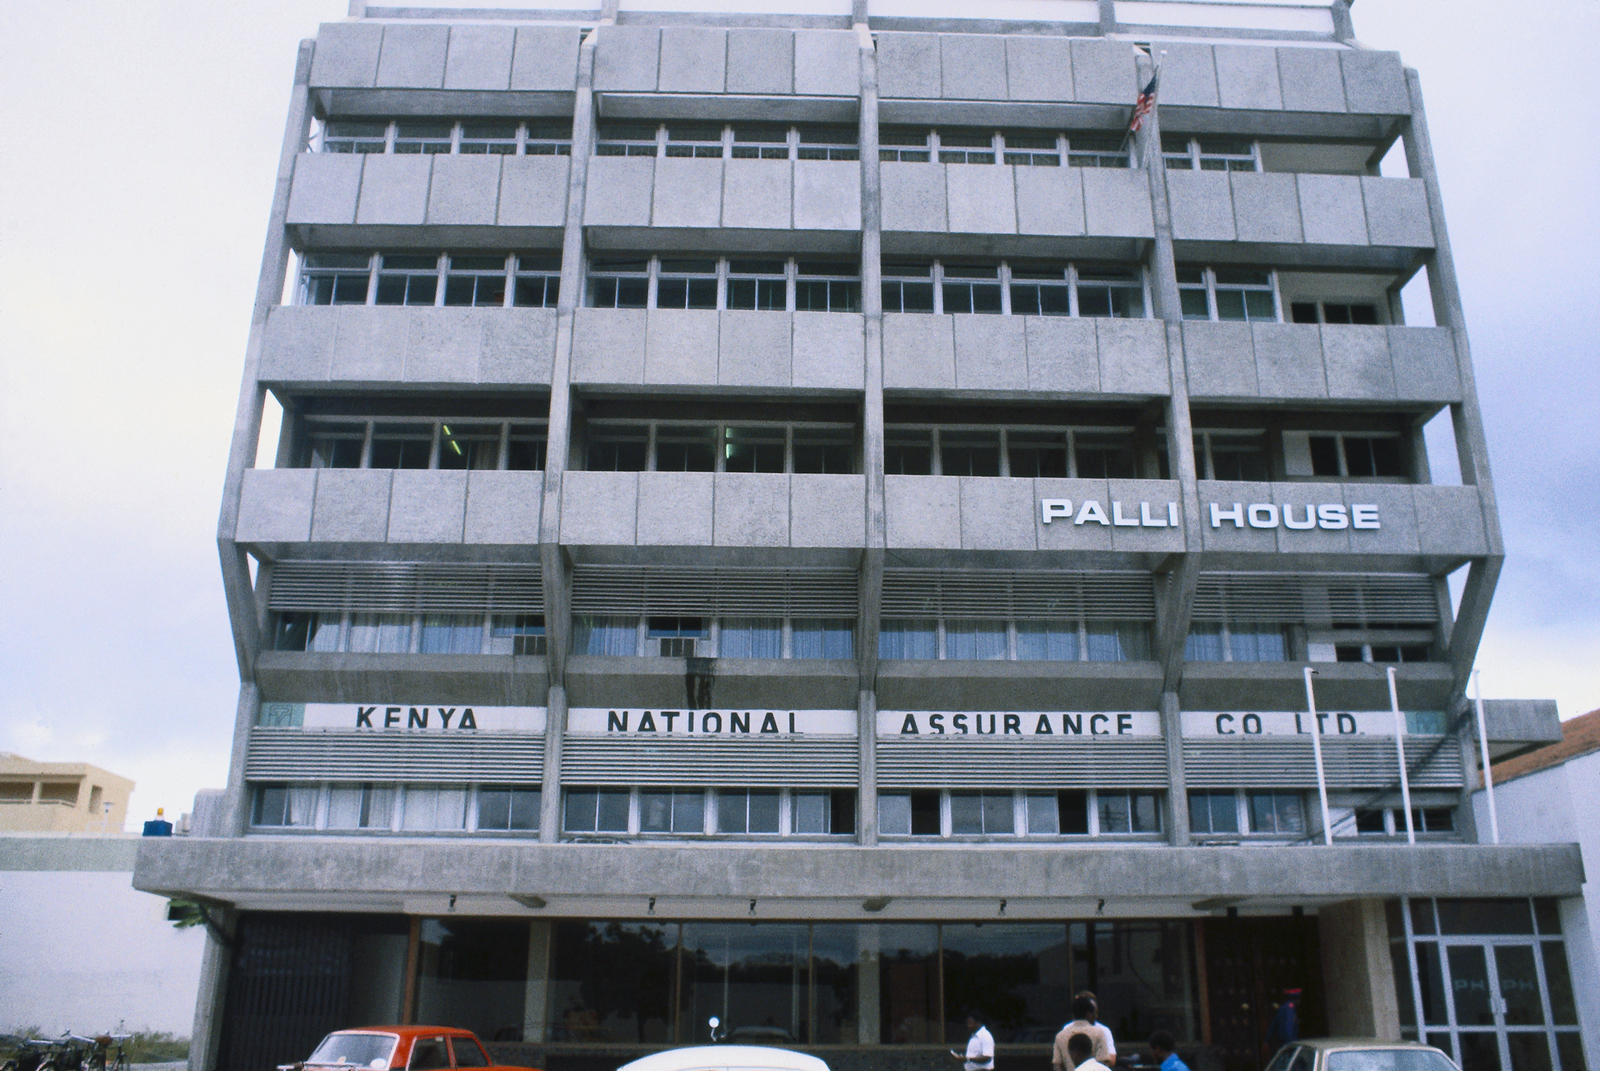 Mombasa - Chancery Office Building - 1982